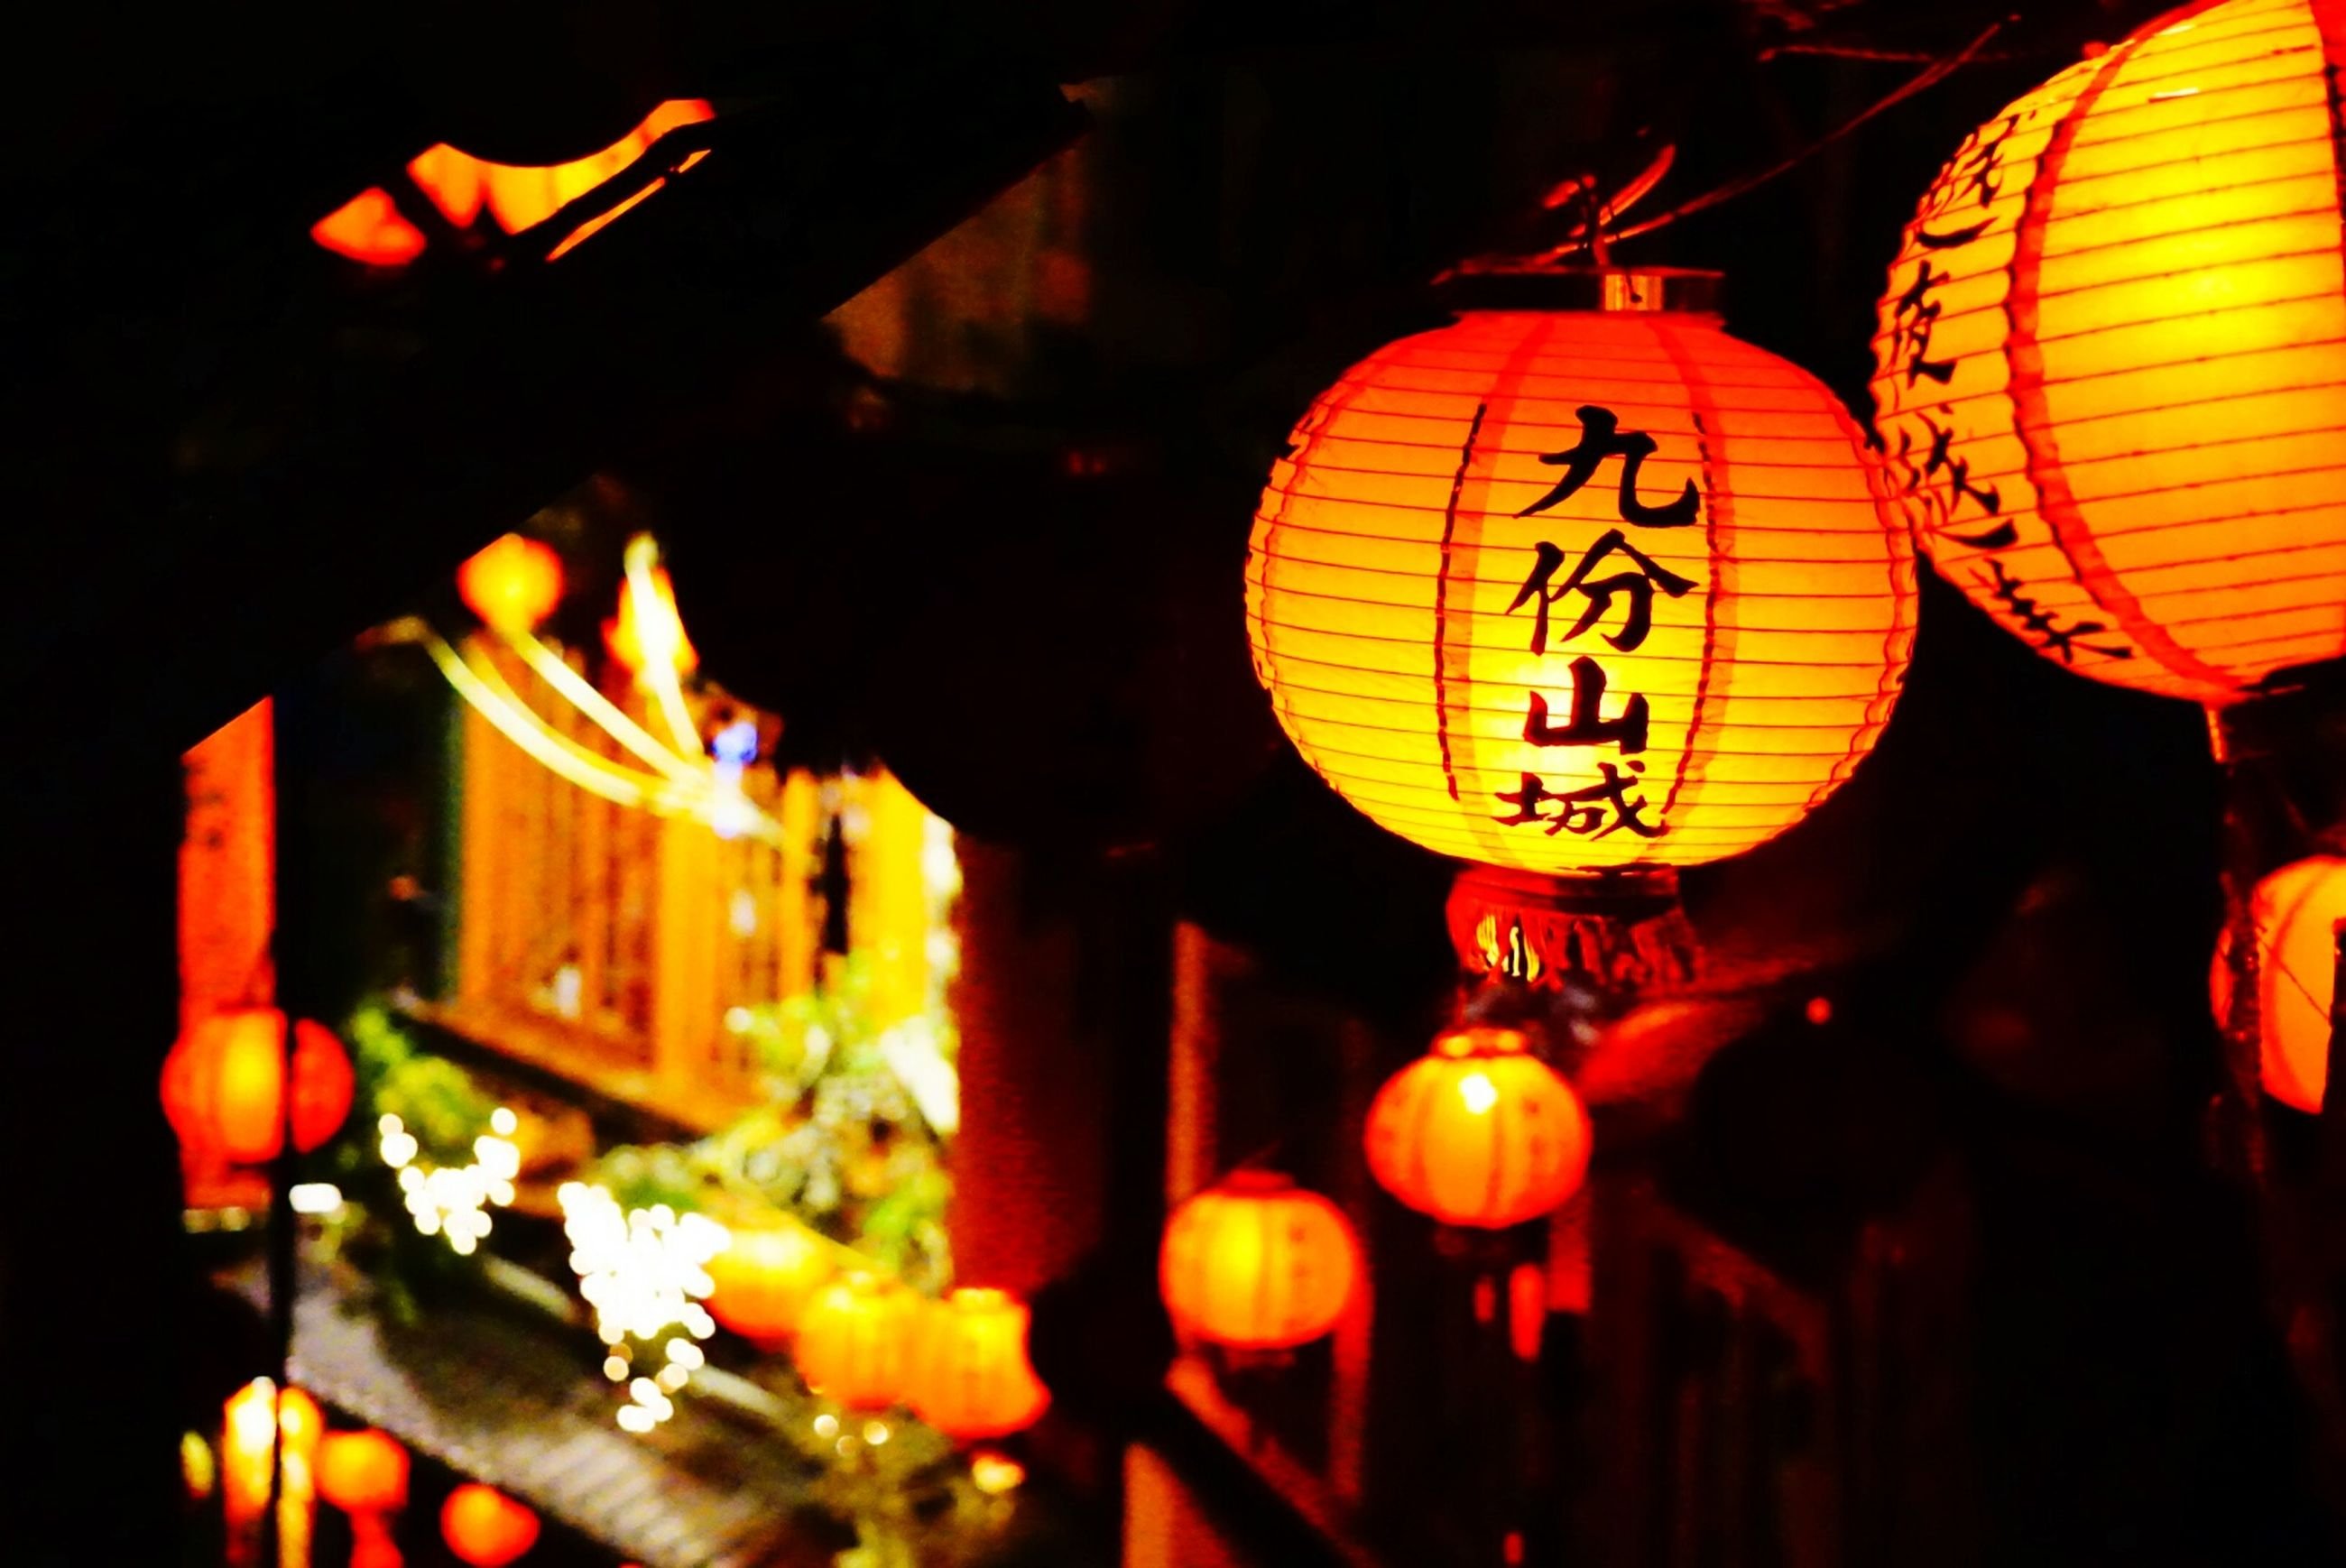 illuminated, night, lighting equipment, lantern, hanging, decoration, low angle view, chinese lantern, electricity, celebration, electric light, cultures, indoors, tradition, light - natural phenomenon, glowing, orange color, traditional festival, electric lamp, no people